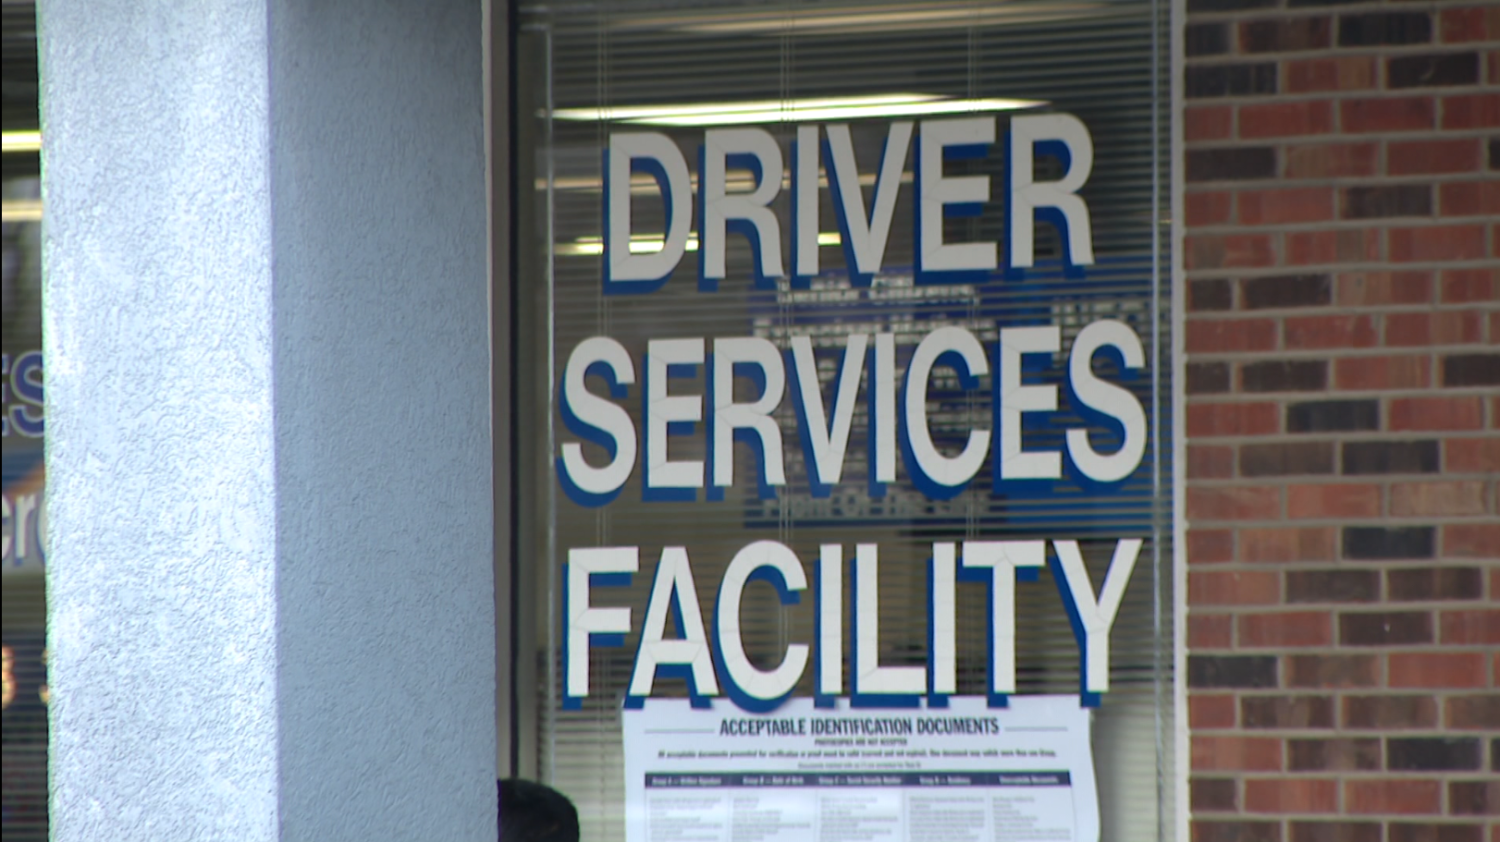 Illinois Secretary Of State's Office Closes Deerfield Driver Services Facility Due To COVID-19 Cases Among Staff – CBS Chicago